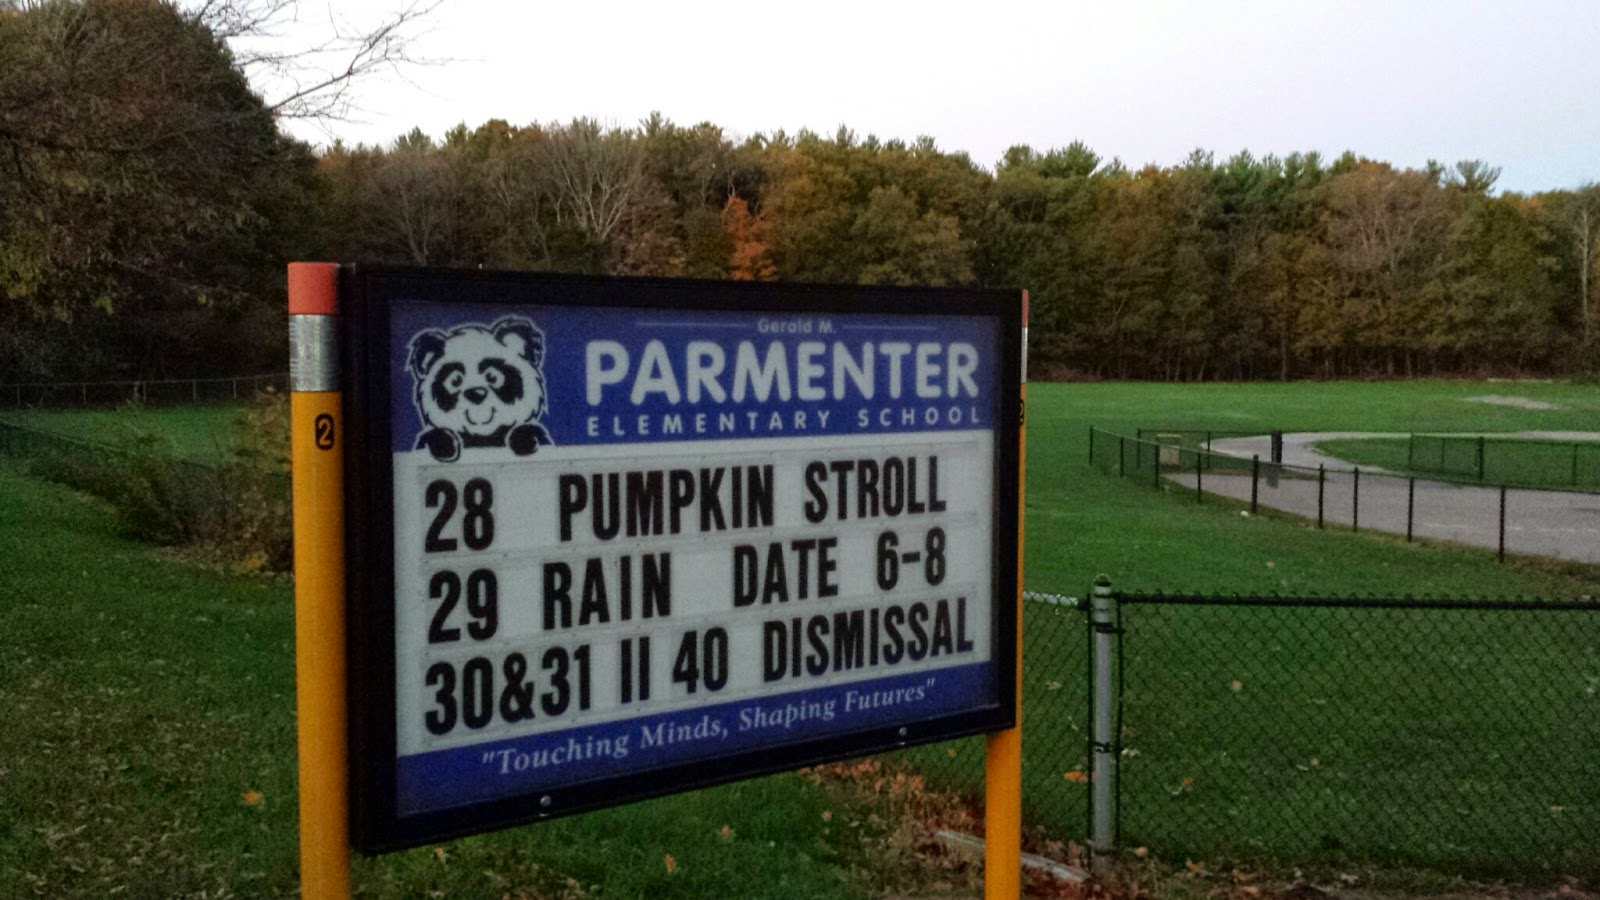 pumpkin stroll at Parmenter today